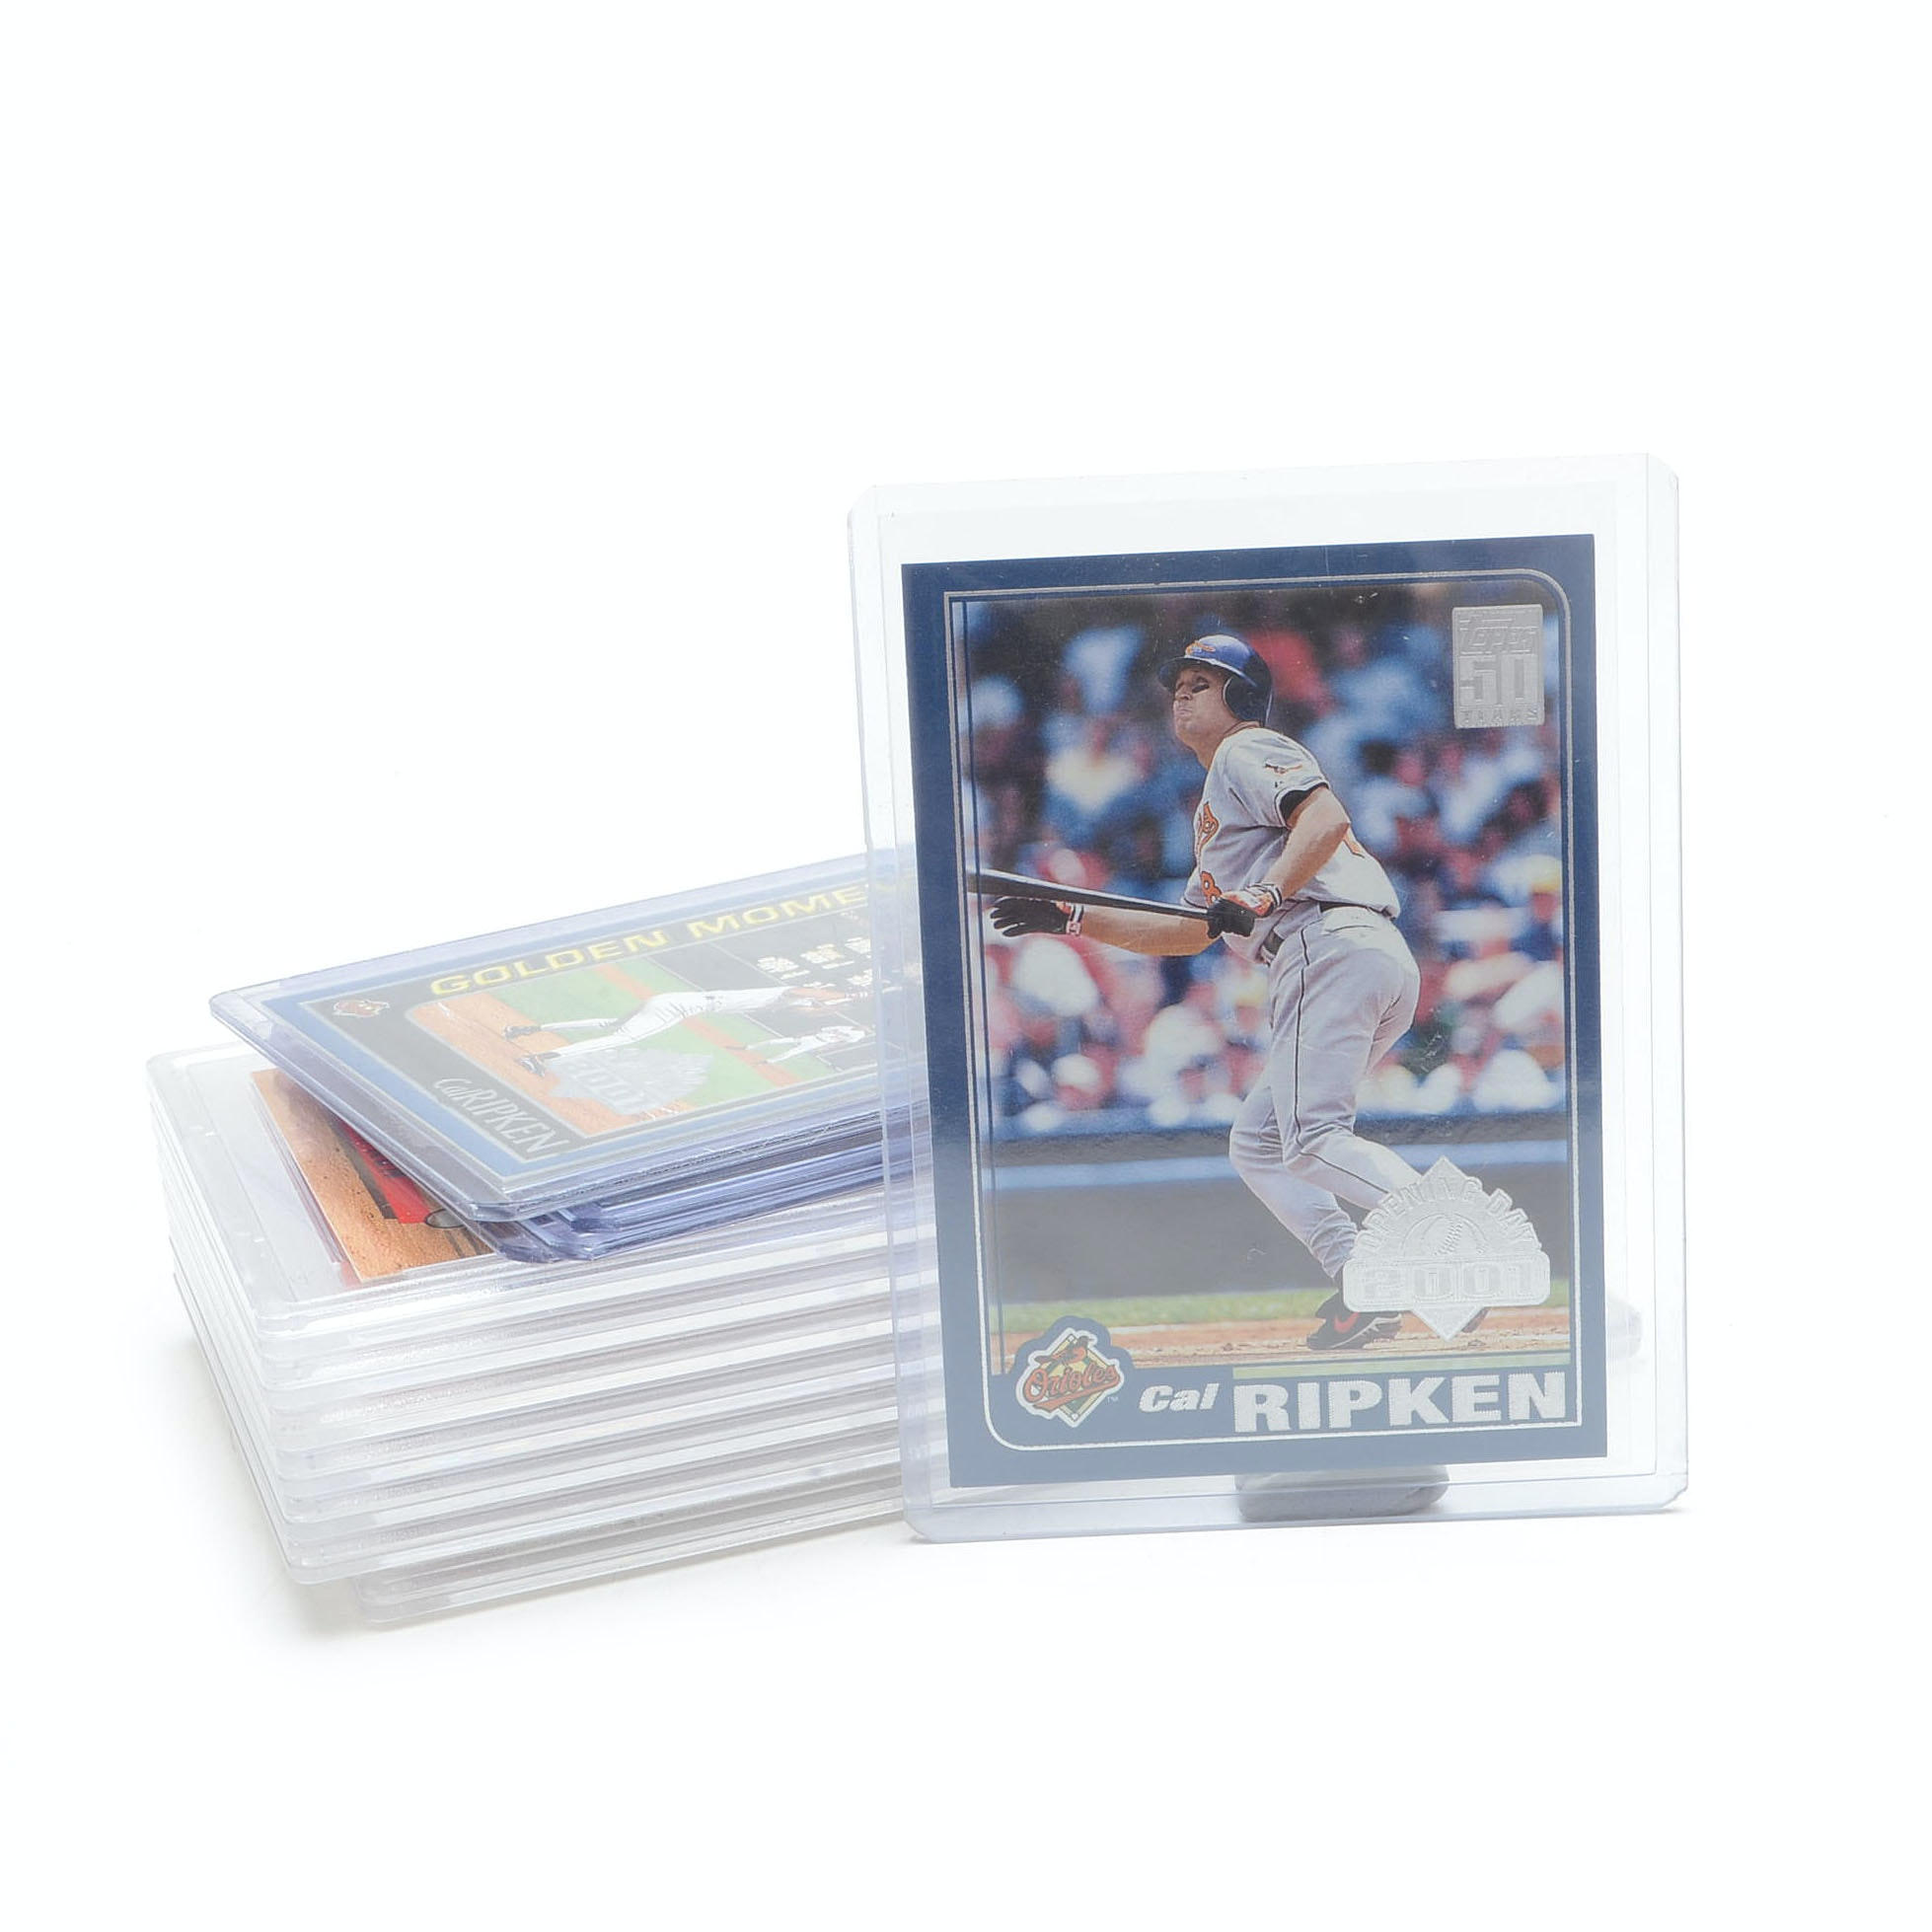 Cal Ripken Jr. Graded Cards with Other Cards